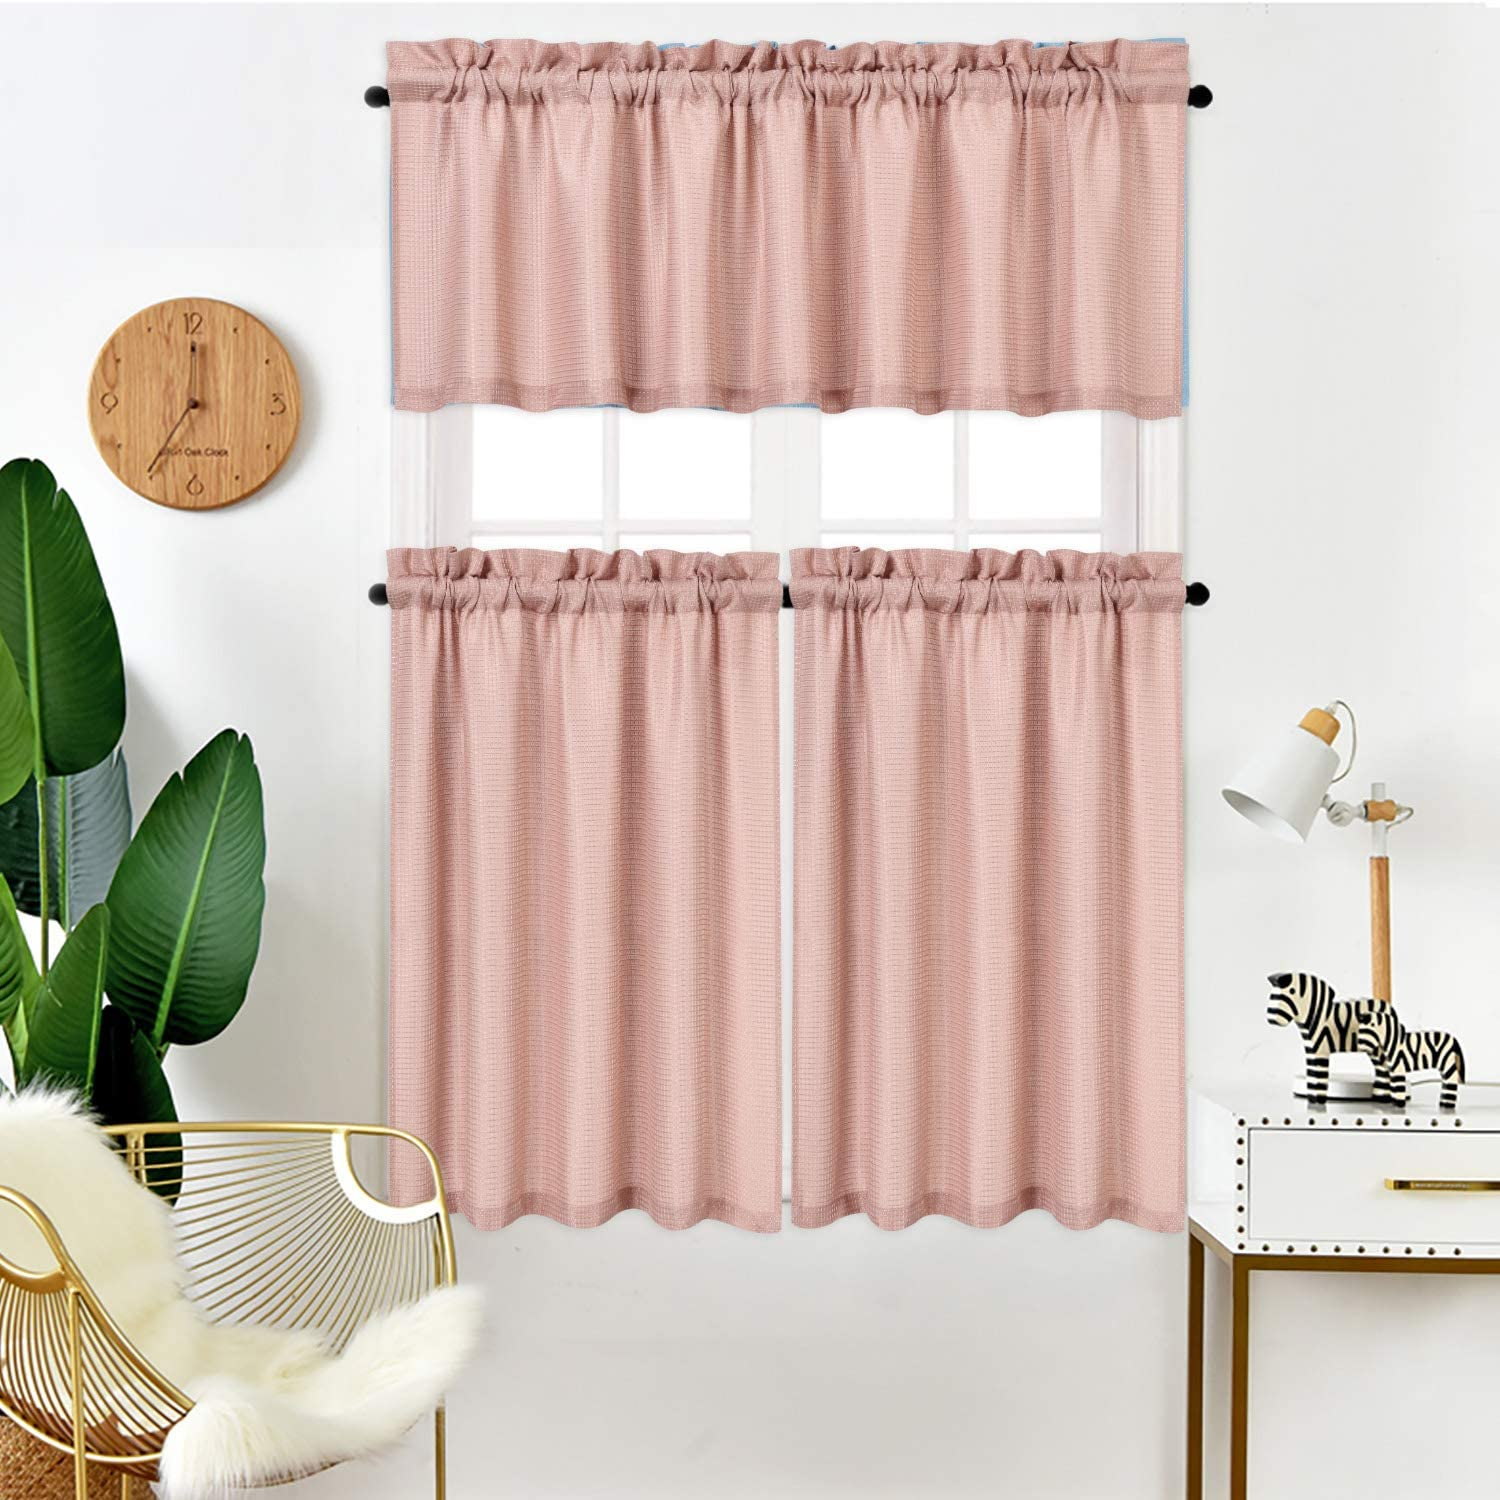 Idealhouse Coral Tier Curtains Waffle Woven Textured Short Window Curtain For Cafe Bathroom Kitchen Kids Bedroom Rod Pocket Curtains 2 Panels 30inch Wide By 24inch Long Home Decor Home Kitchen Guardebem Com